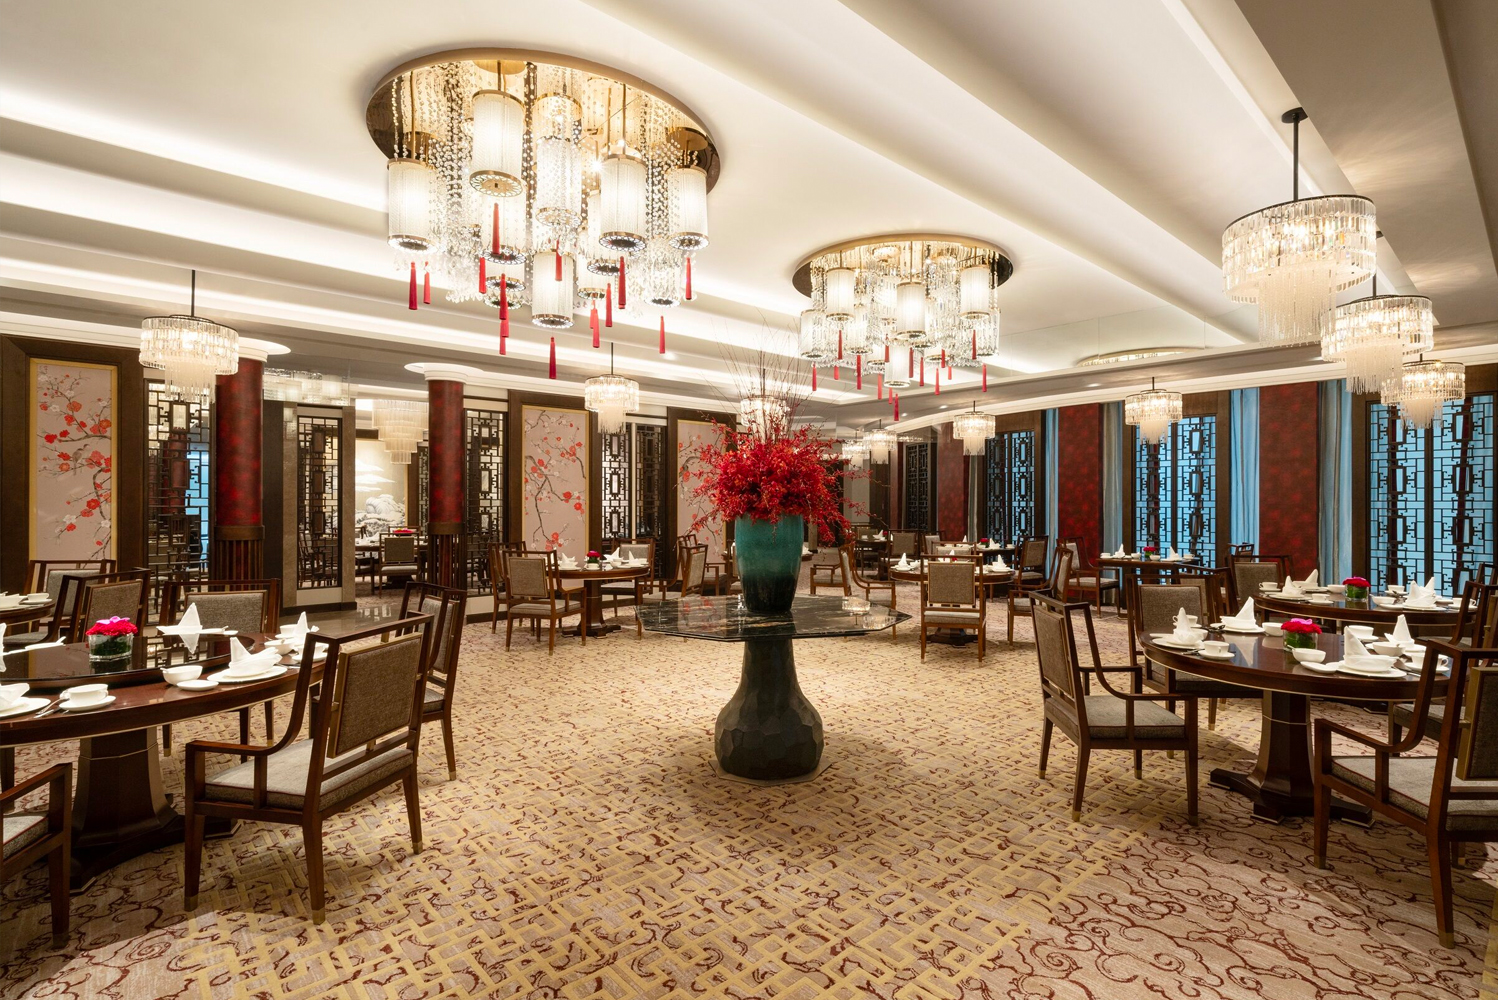 This is the newest international luxury-branded hotel in the central business district of Suzhou Industrial Park (SIP).